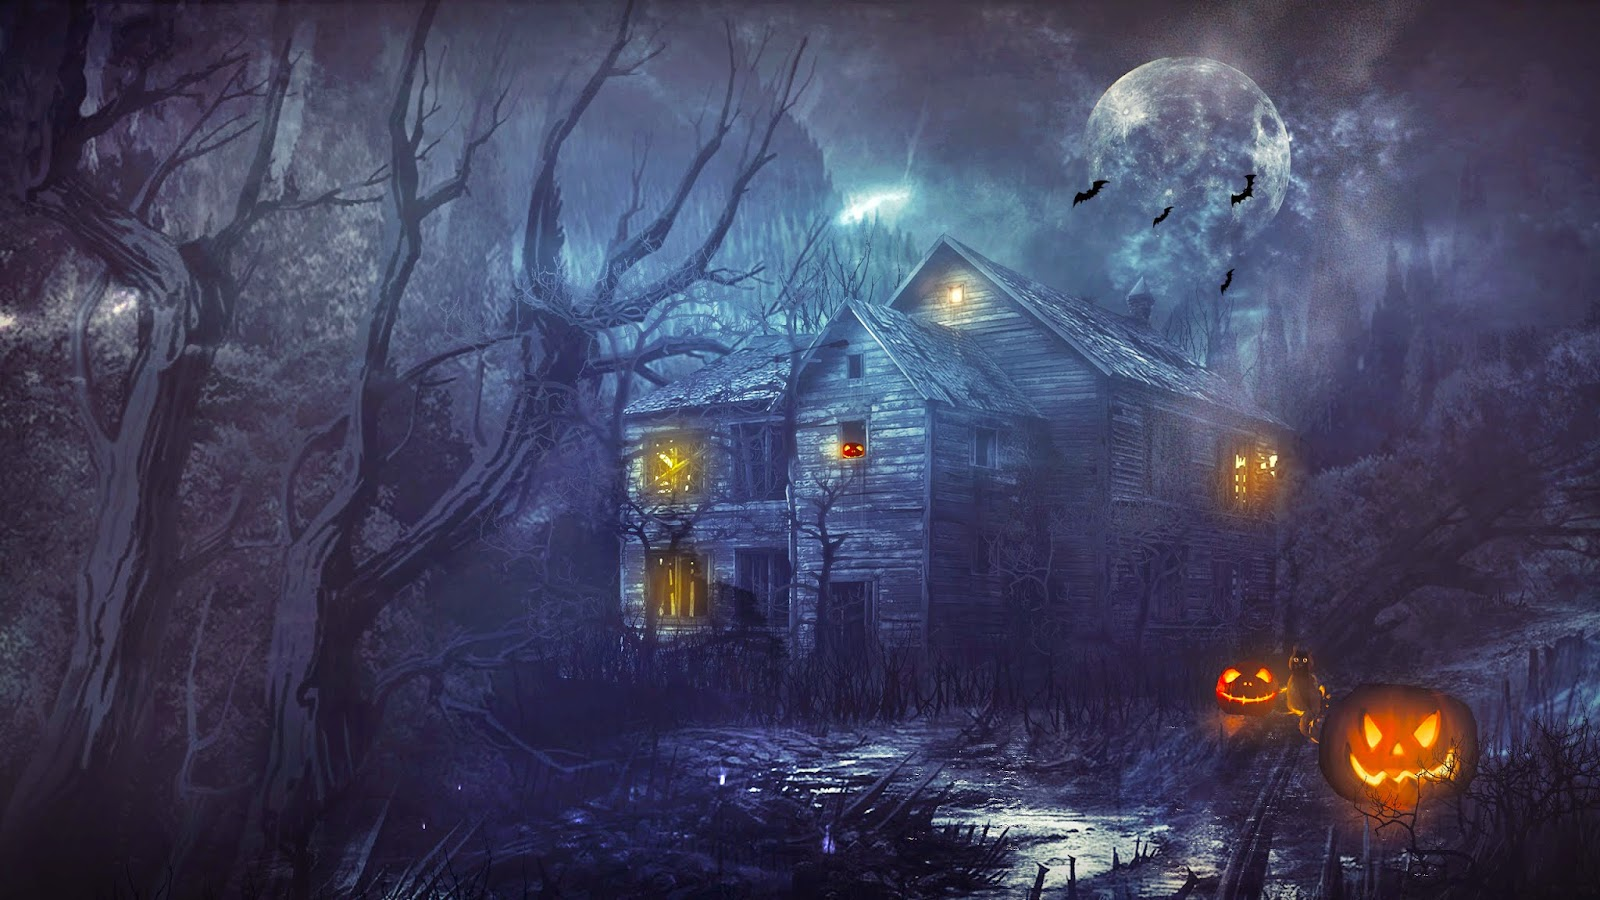 Amazing   Wallpaper Horse Creepy - 2560x1440-halloween-night-haunted-ghost-house-images-for-desktop-pc-mac-HD-free-download  Snapshot_585.jpg